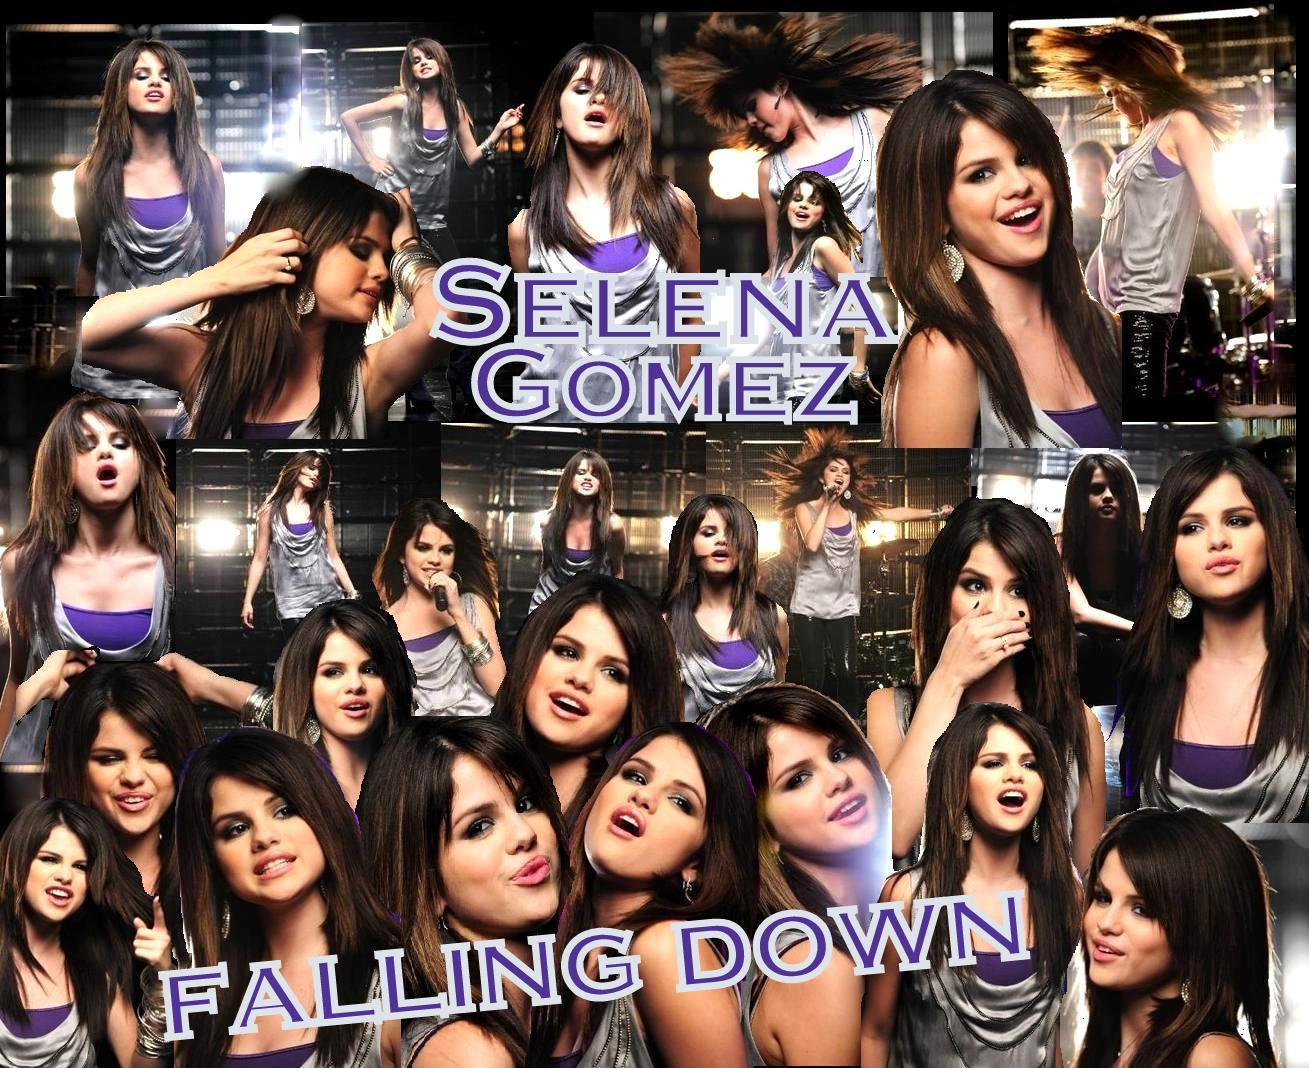 http://images2.fanpop.com/images/photos/7800000/selena-falling-down-fan-art-selena-gomez-7829871-1309-1068.jpg